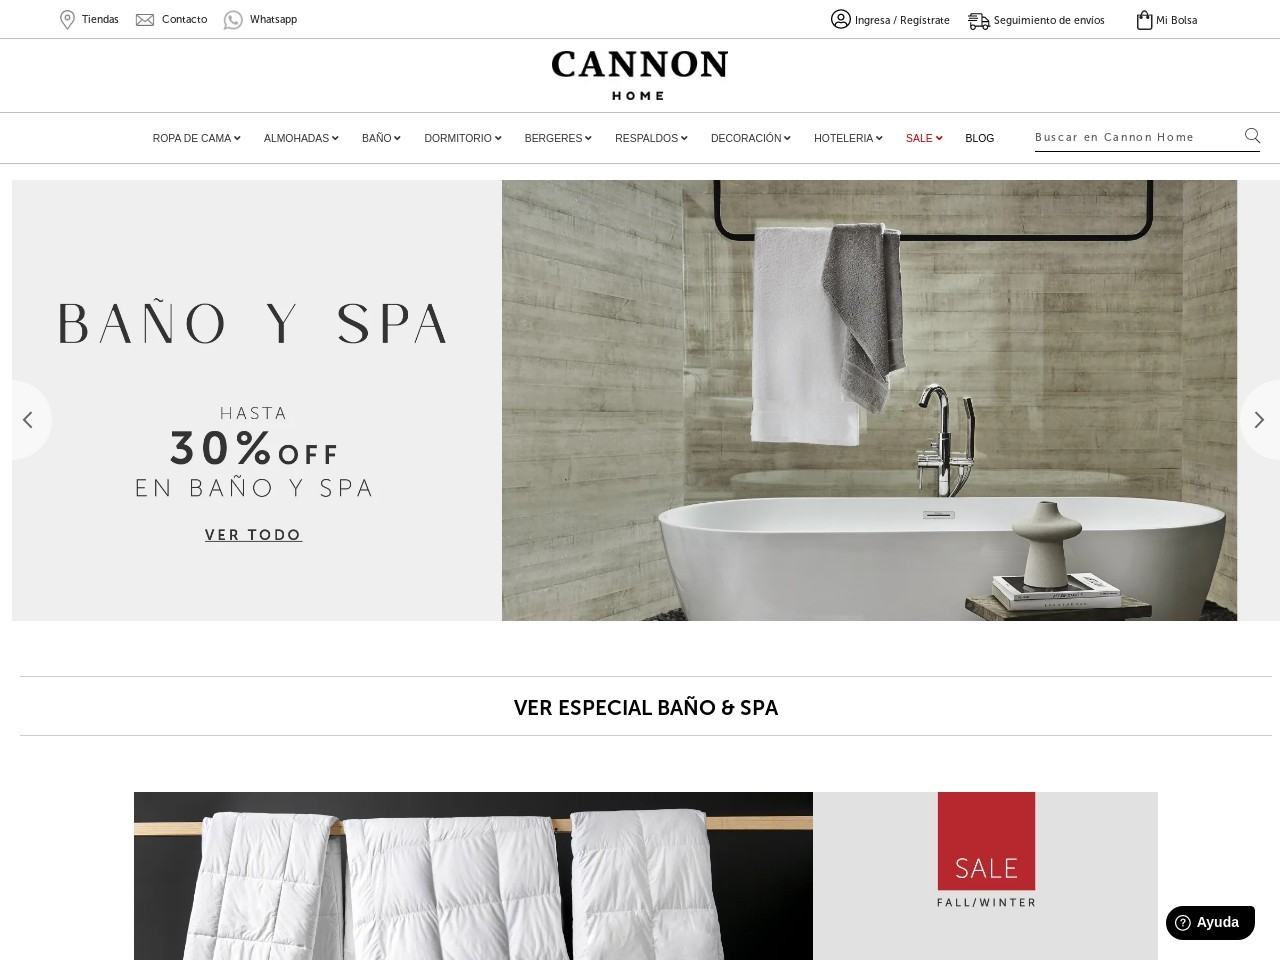 Cannon Home